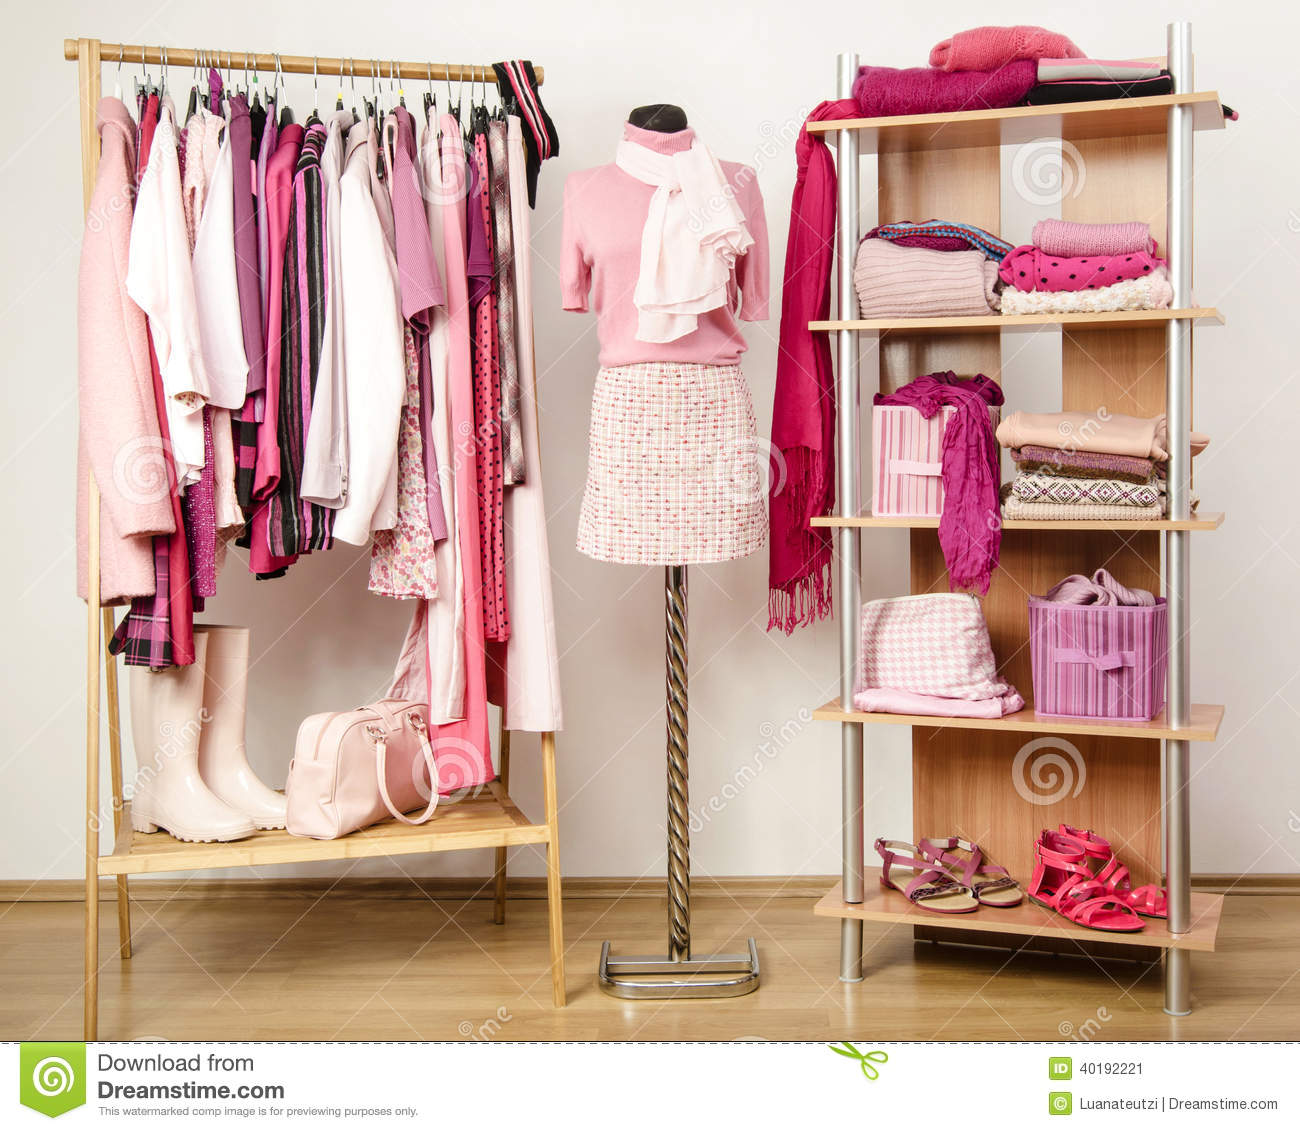 Royalty Free Stock Photo. Download Dressing Closet With Pink Clothes  Arranged On Hangers And ...